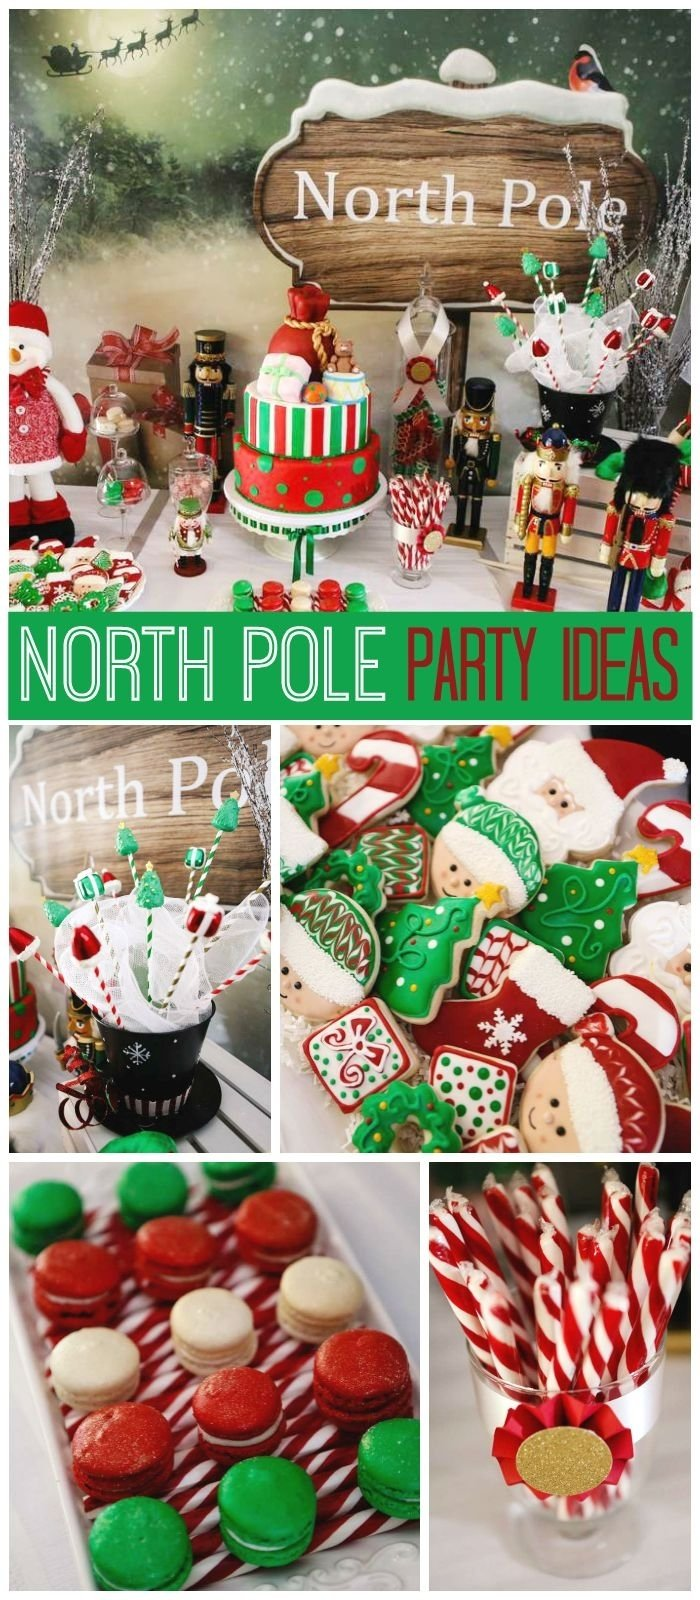 10 Cute Holiday Party Ideas For Kids 1220 best kids birthday images on pinterest birthdays unicorn and 2020